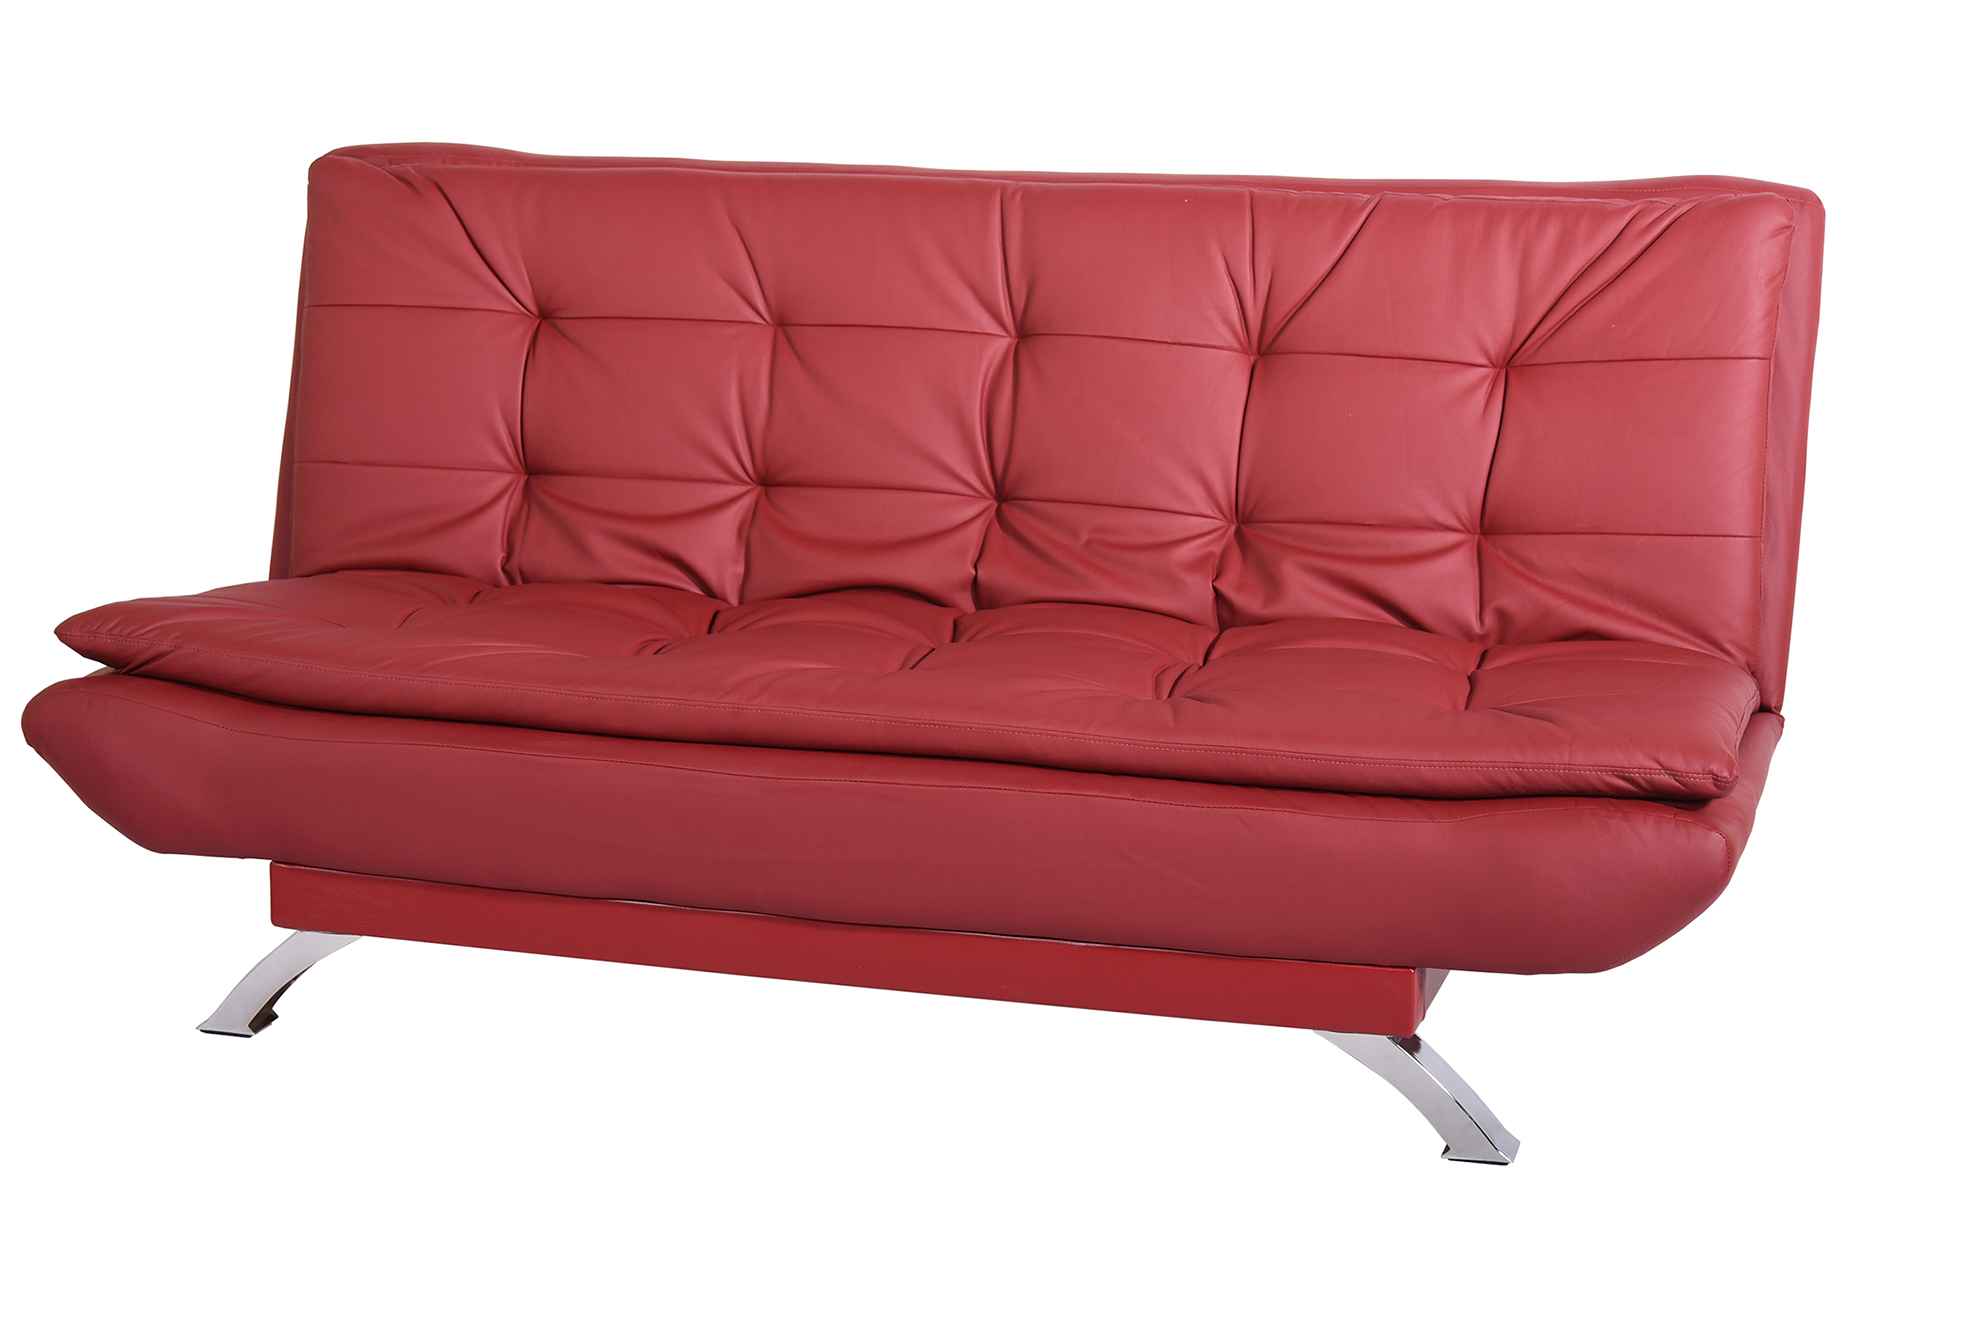 red leather sleeper sofa usa made sofas pull out beds thesofa